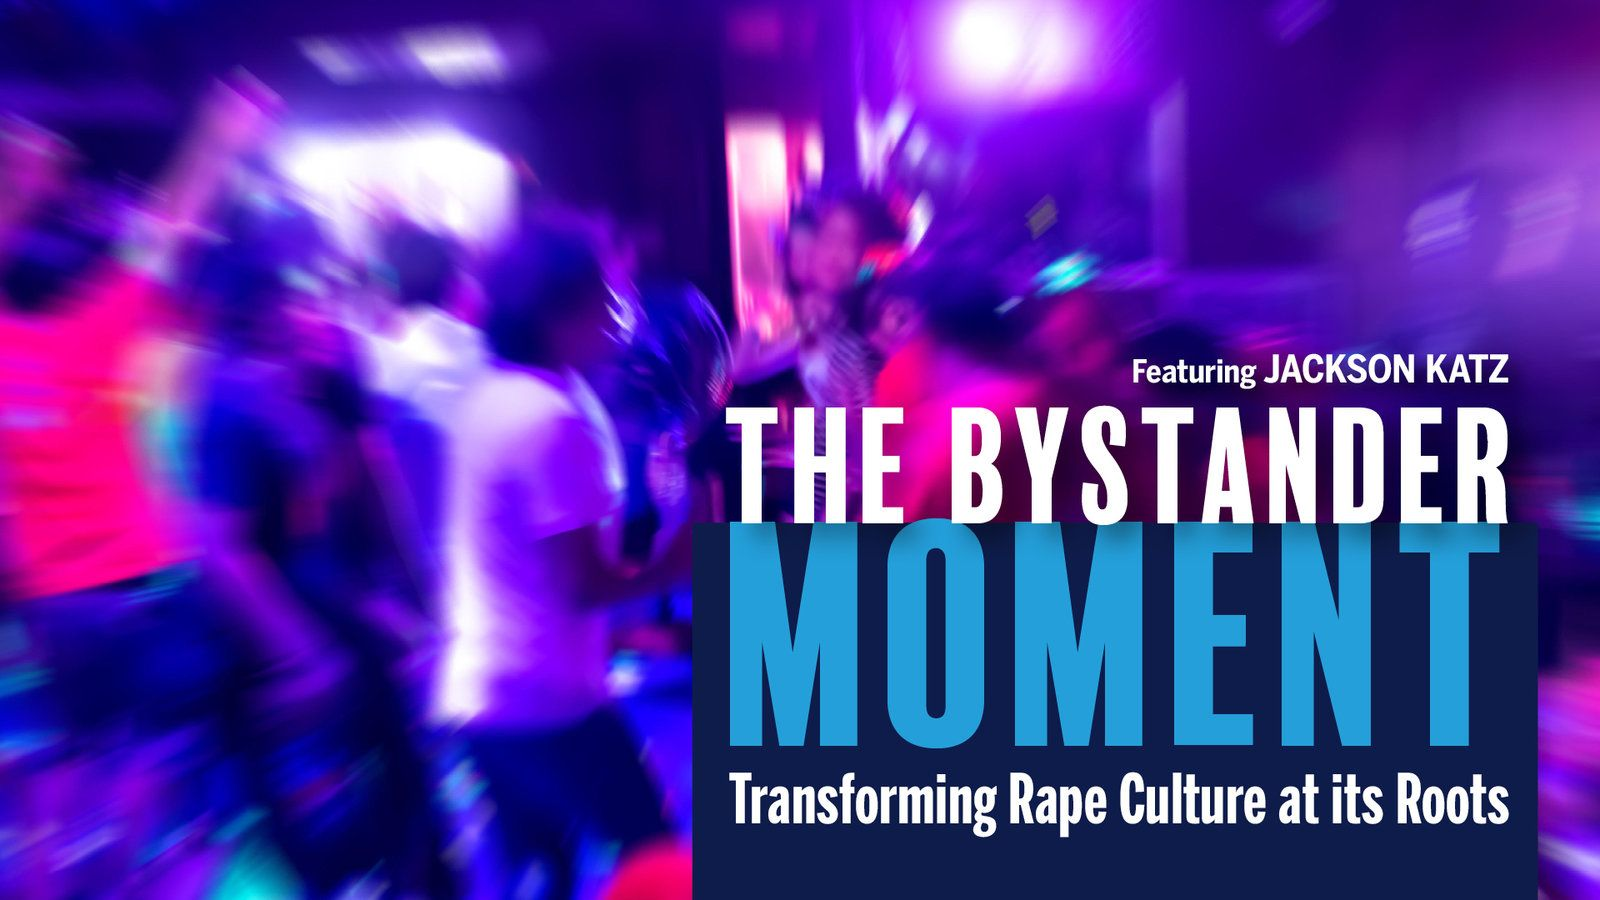 Film Screening - The Bystander Moment